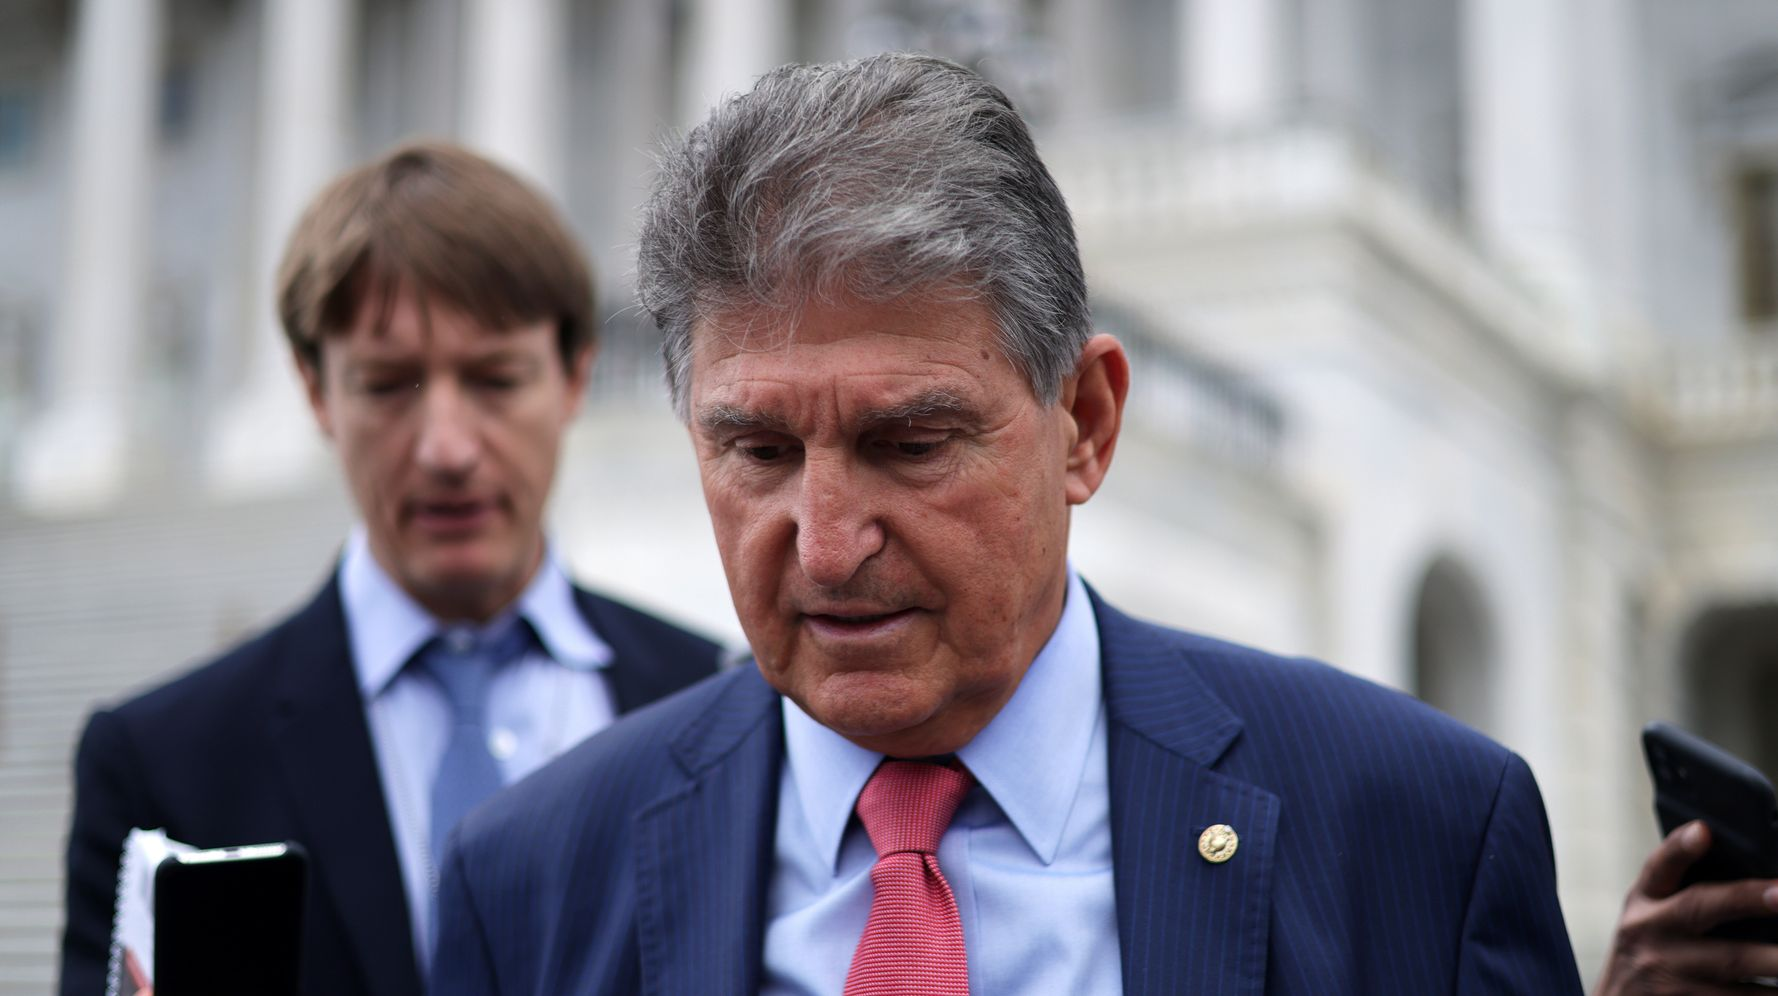 Poor People's Campaign To March On Joe Manchin, Mitch McConnell In Washington